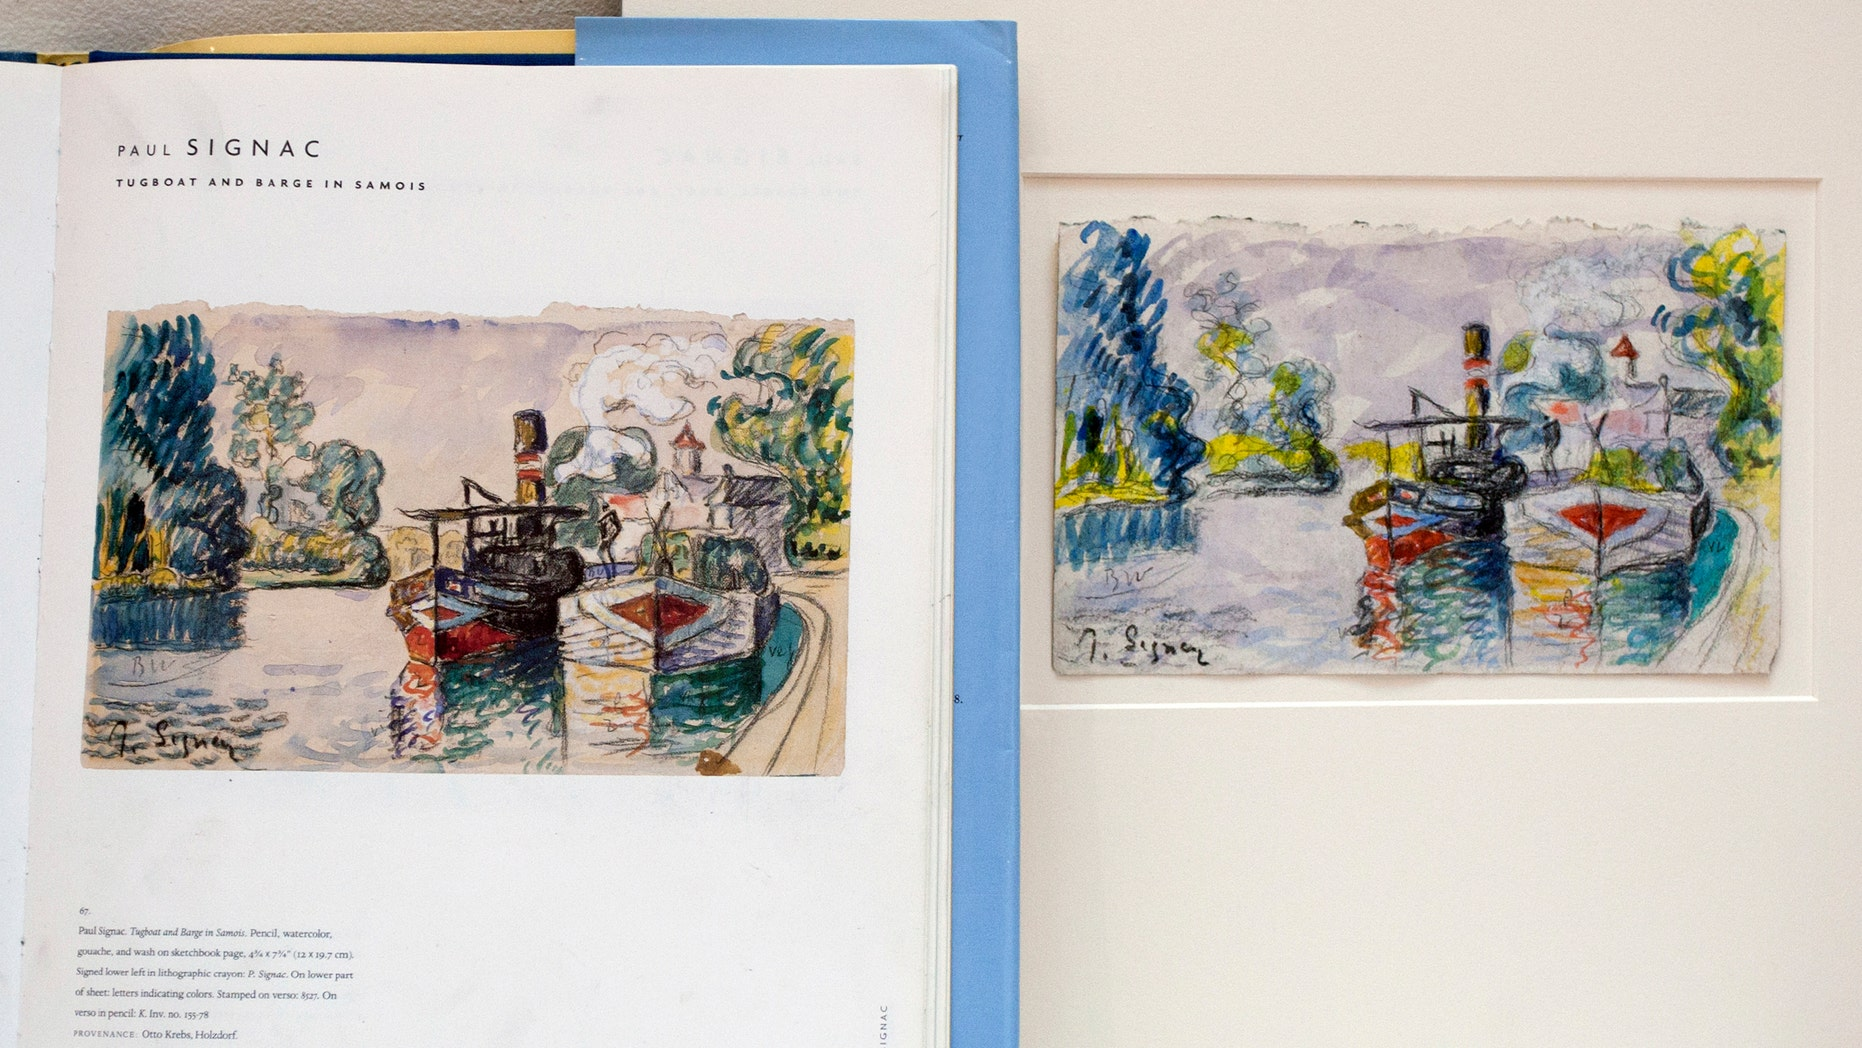 A print in a book shows a work by  French painter Paul Signac, left, and the forged version and painted by art forger Mark A. Landis, of Laurel, Miss., right,  at the University of Cincinnati in Cincinnati, Ohio on Tuesday, March 27, 2012.